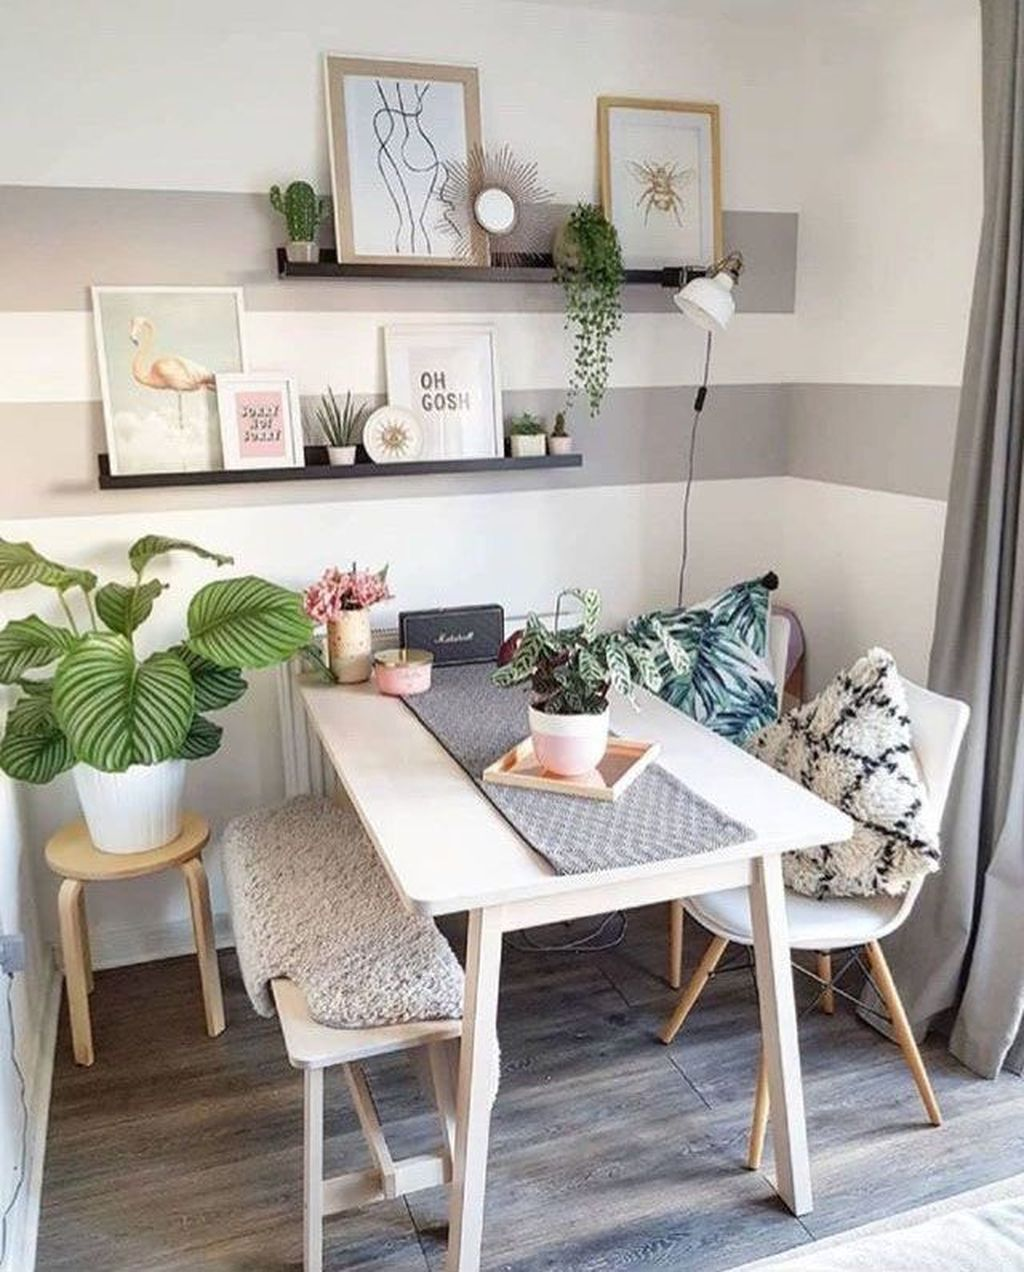 Top 17+ Trendiest Dining Room Ideas for 2019 Year in 2020